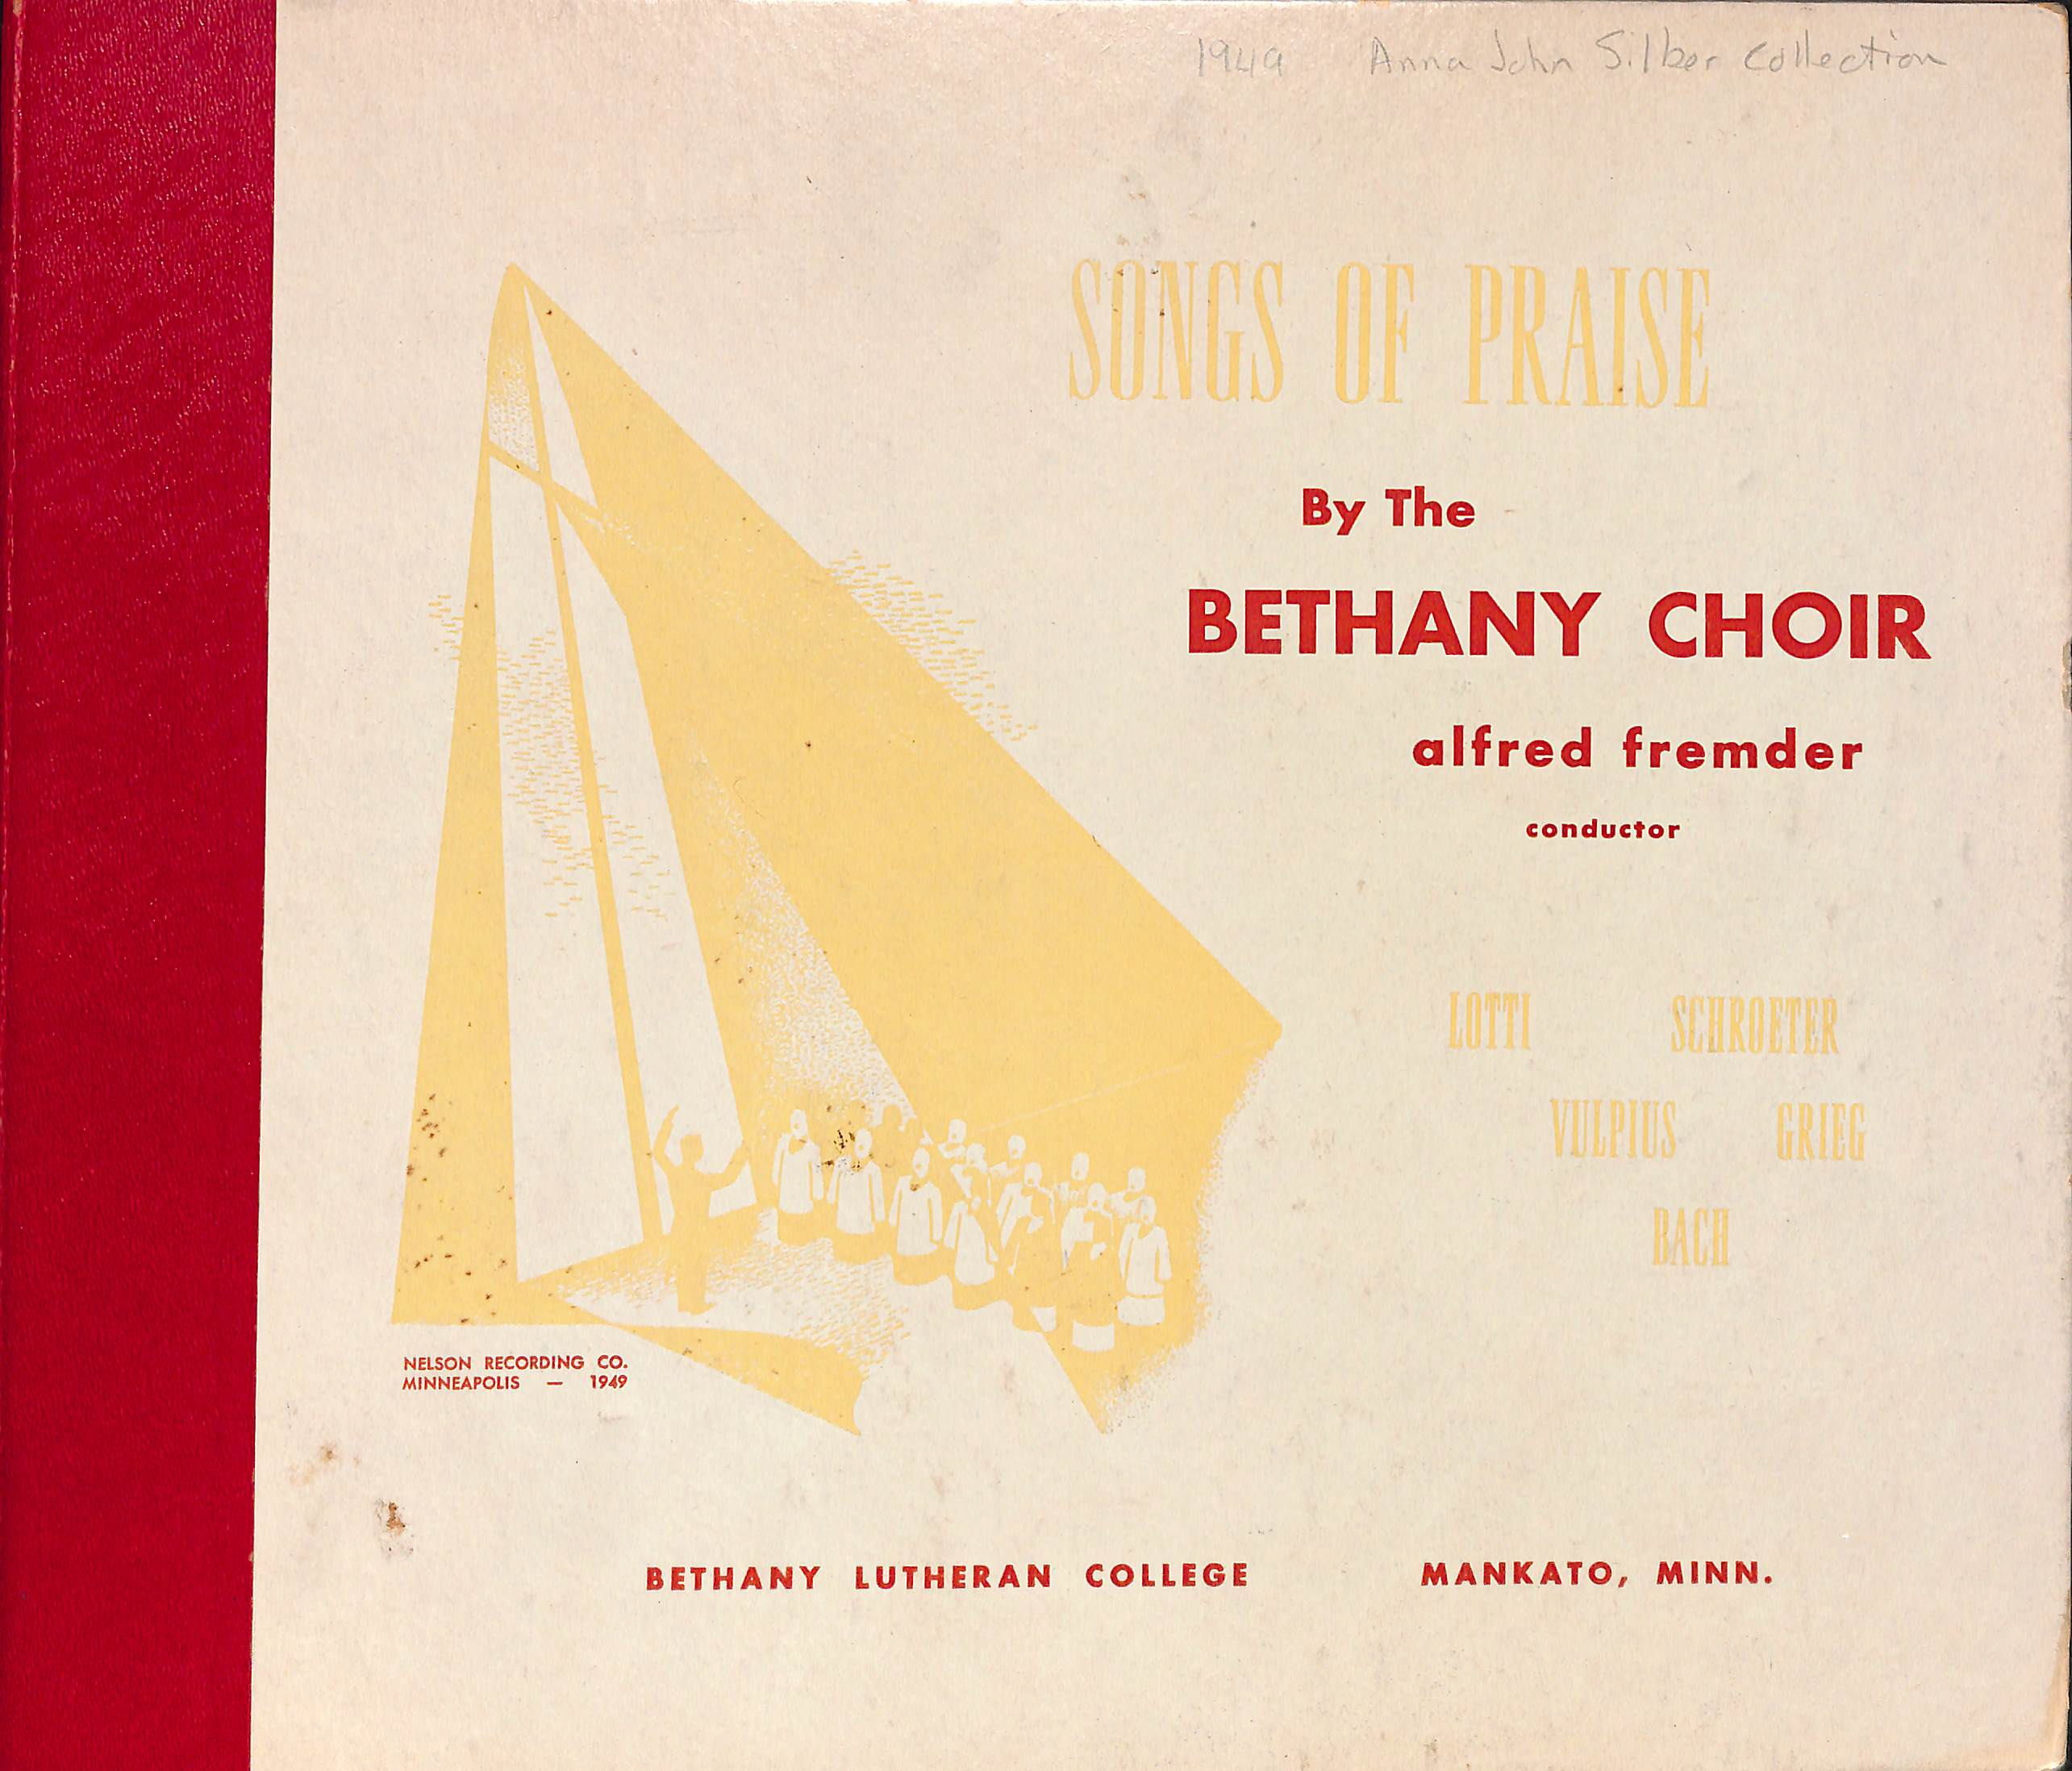 The Bethany Choir 1949: Songs of Praise